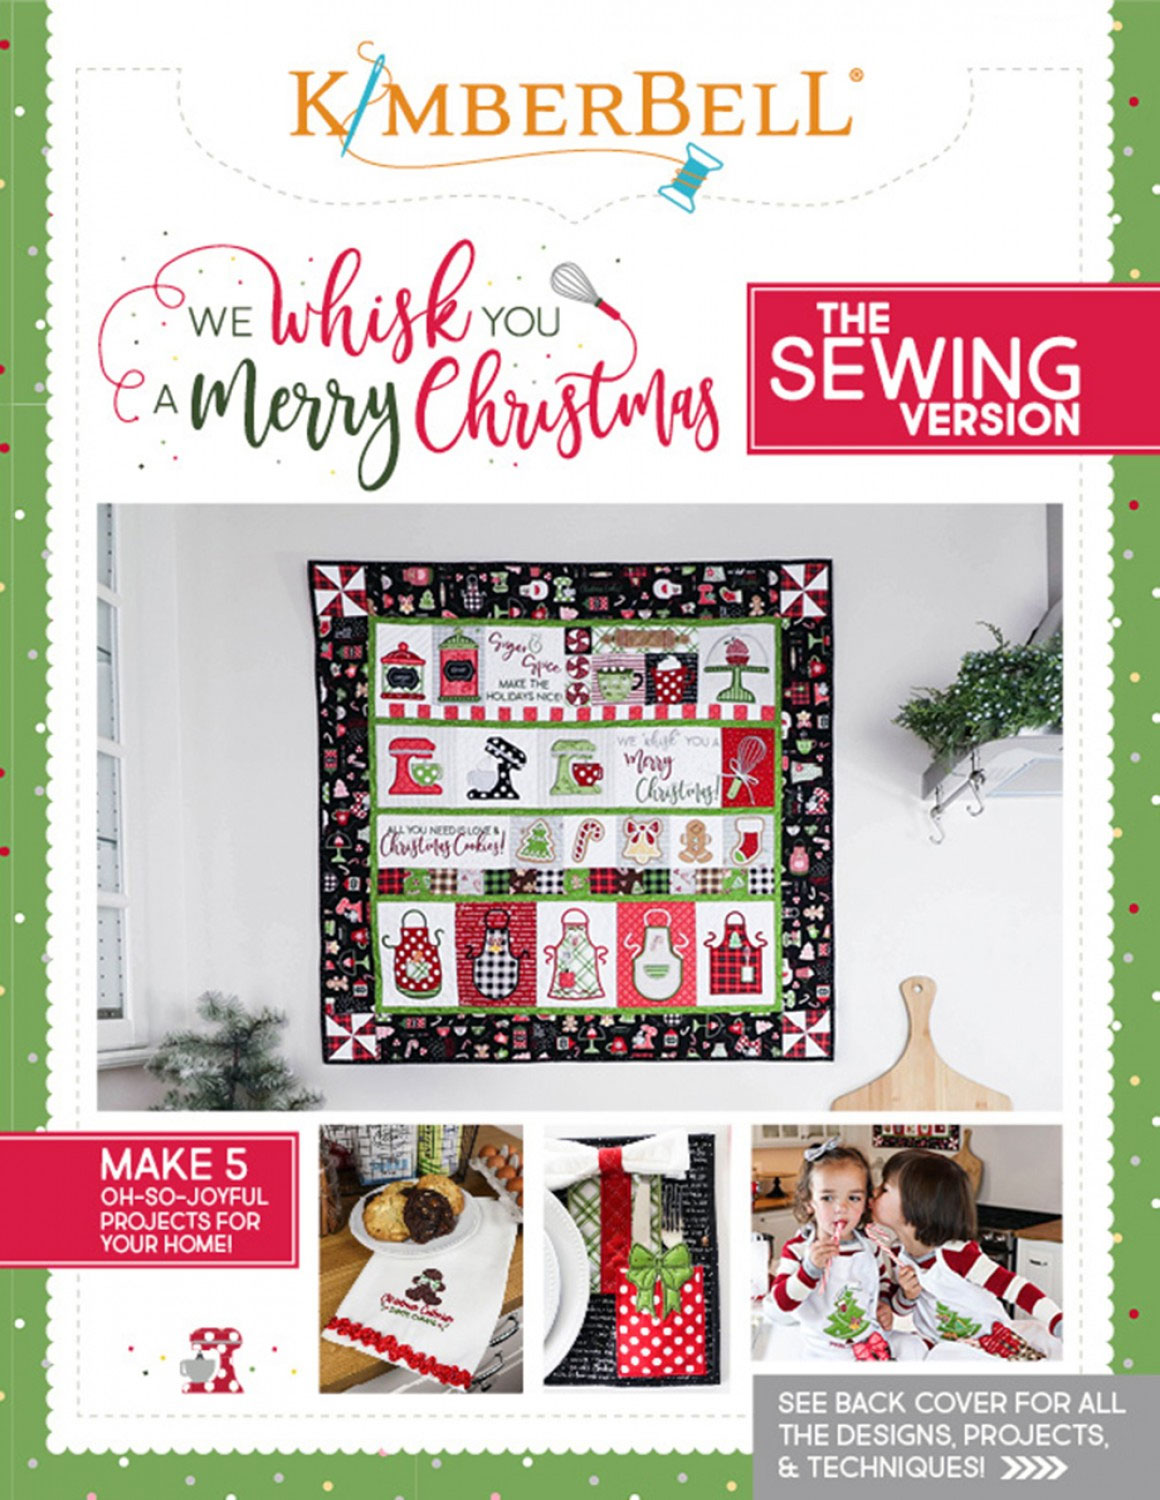 We-Whisk-you-a-Merry-Christmas-sewing-pattern-Kimberbell-front